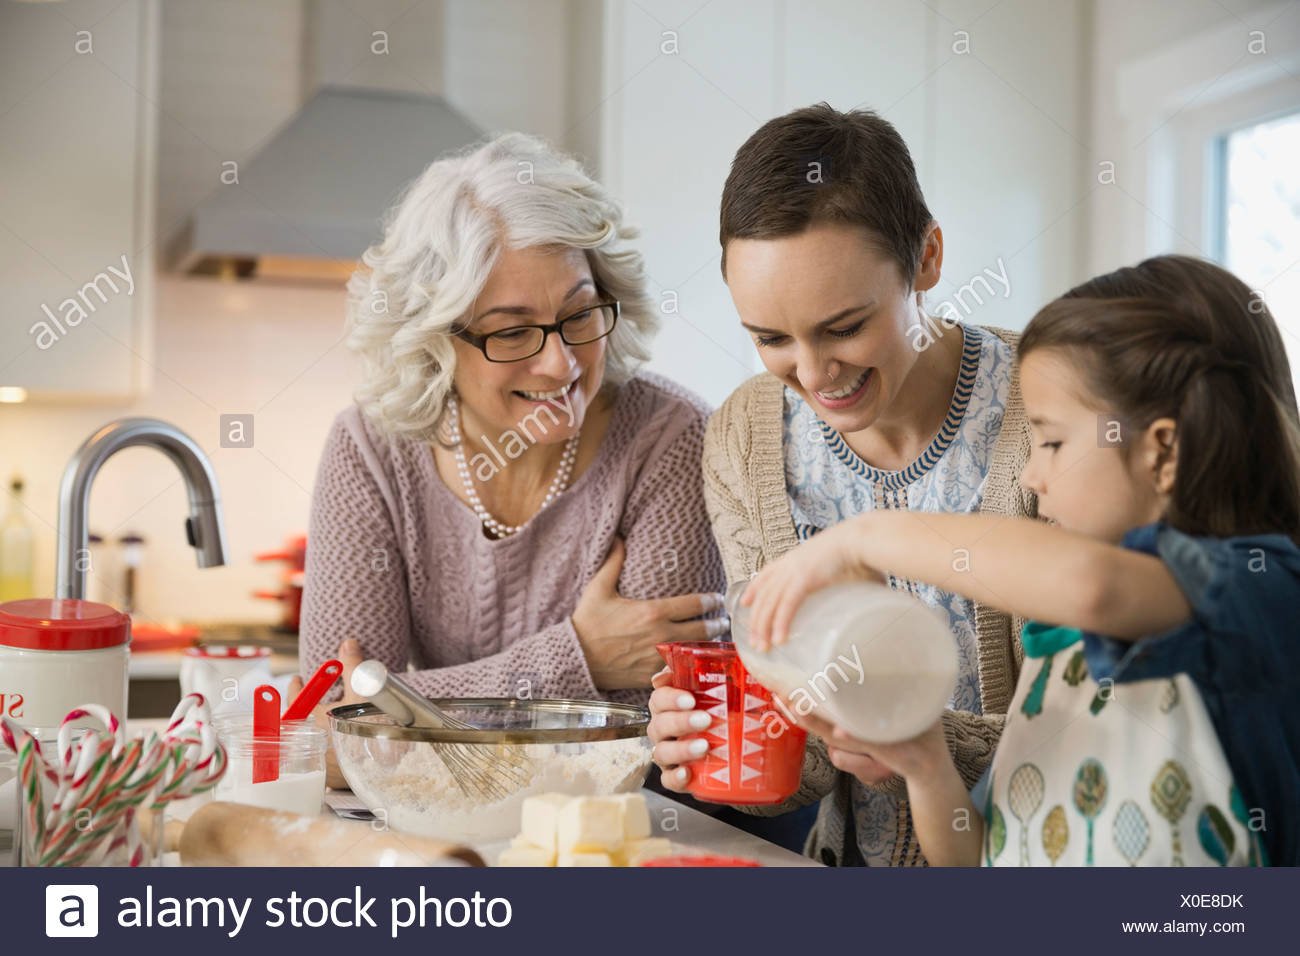 Three generation family baking cookies during Christmas - Stock Image